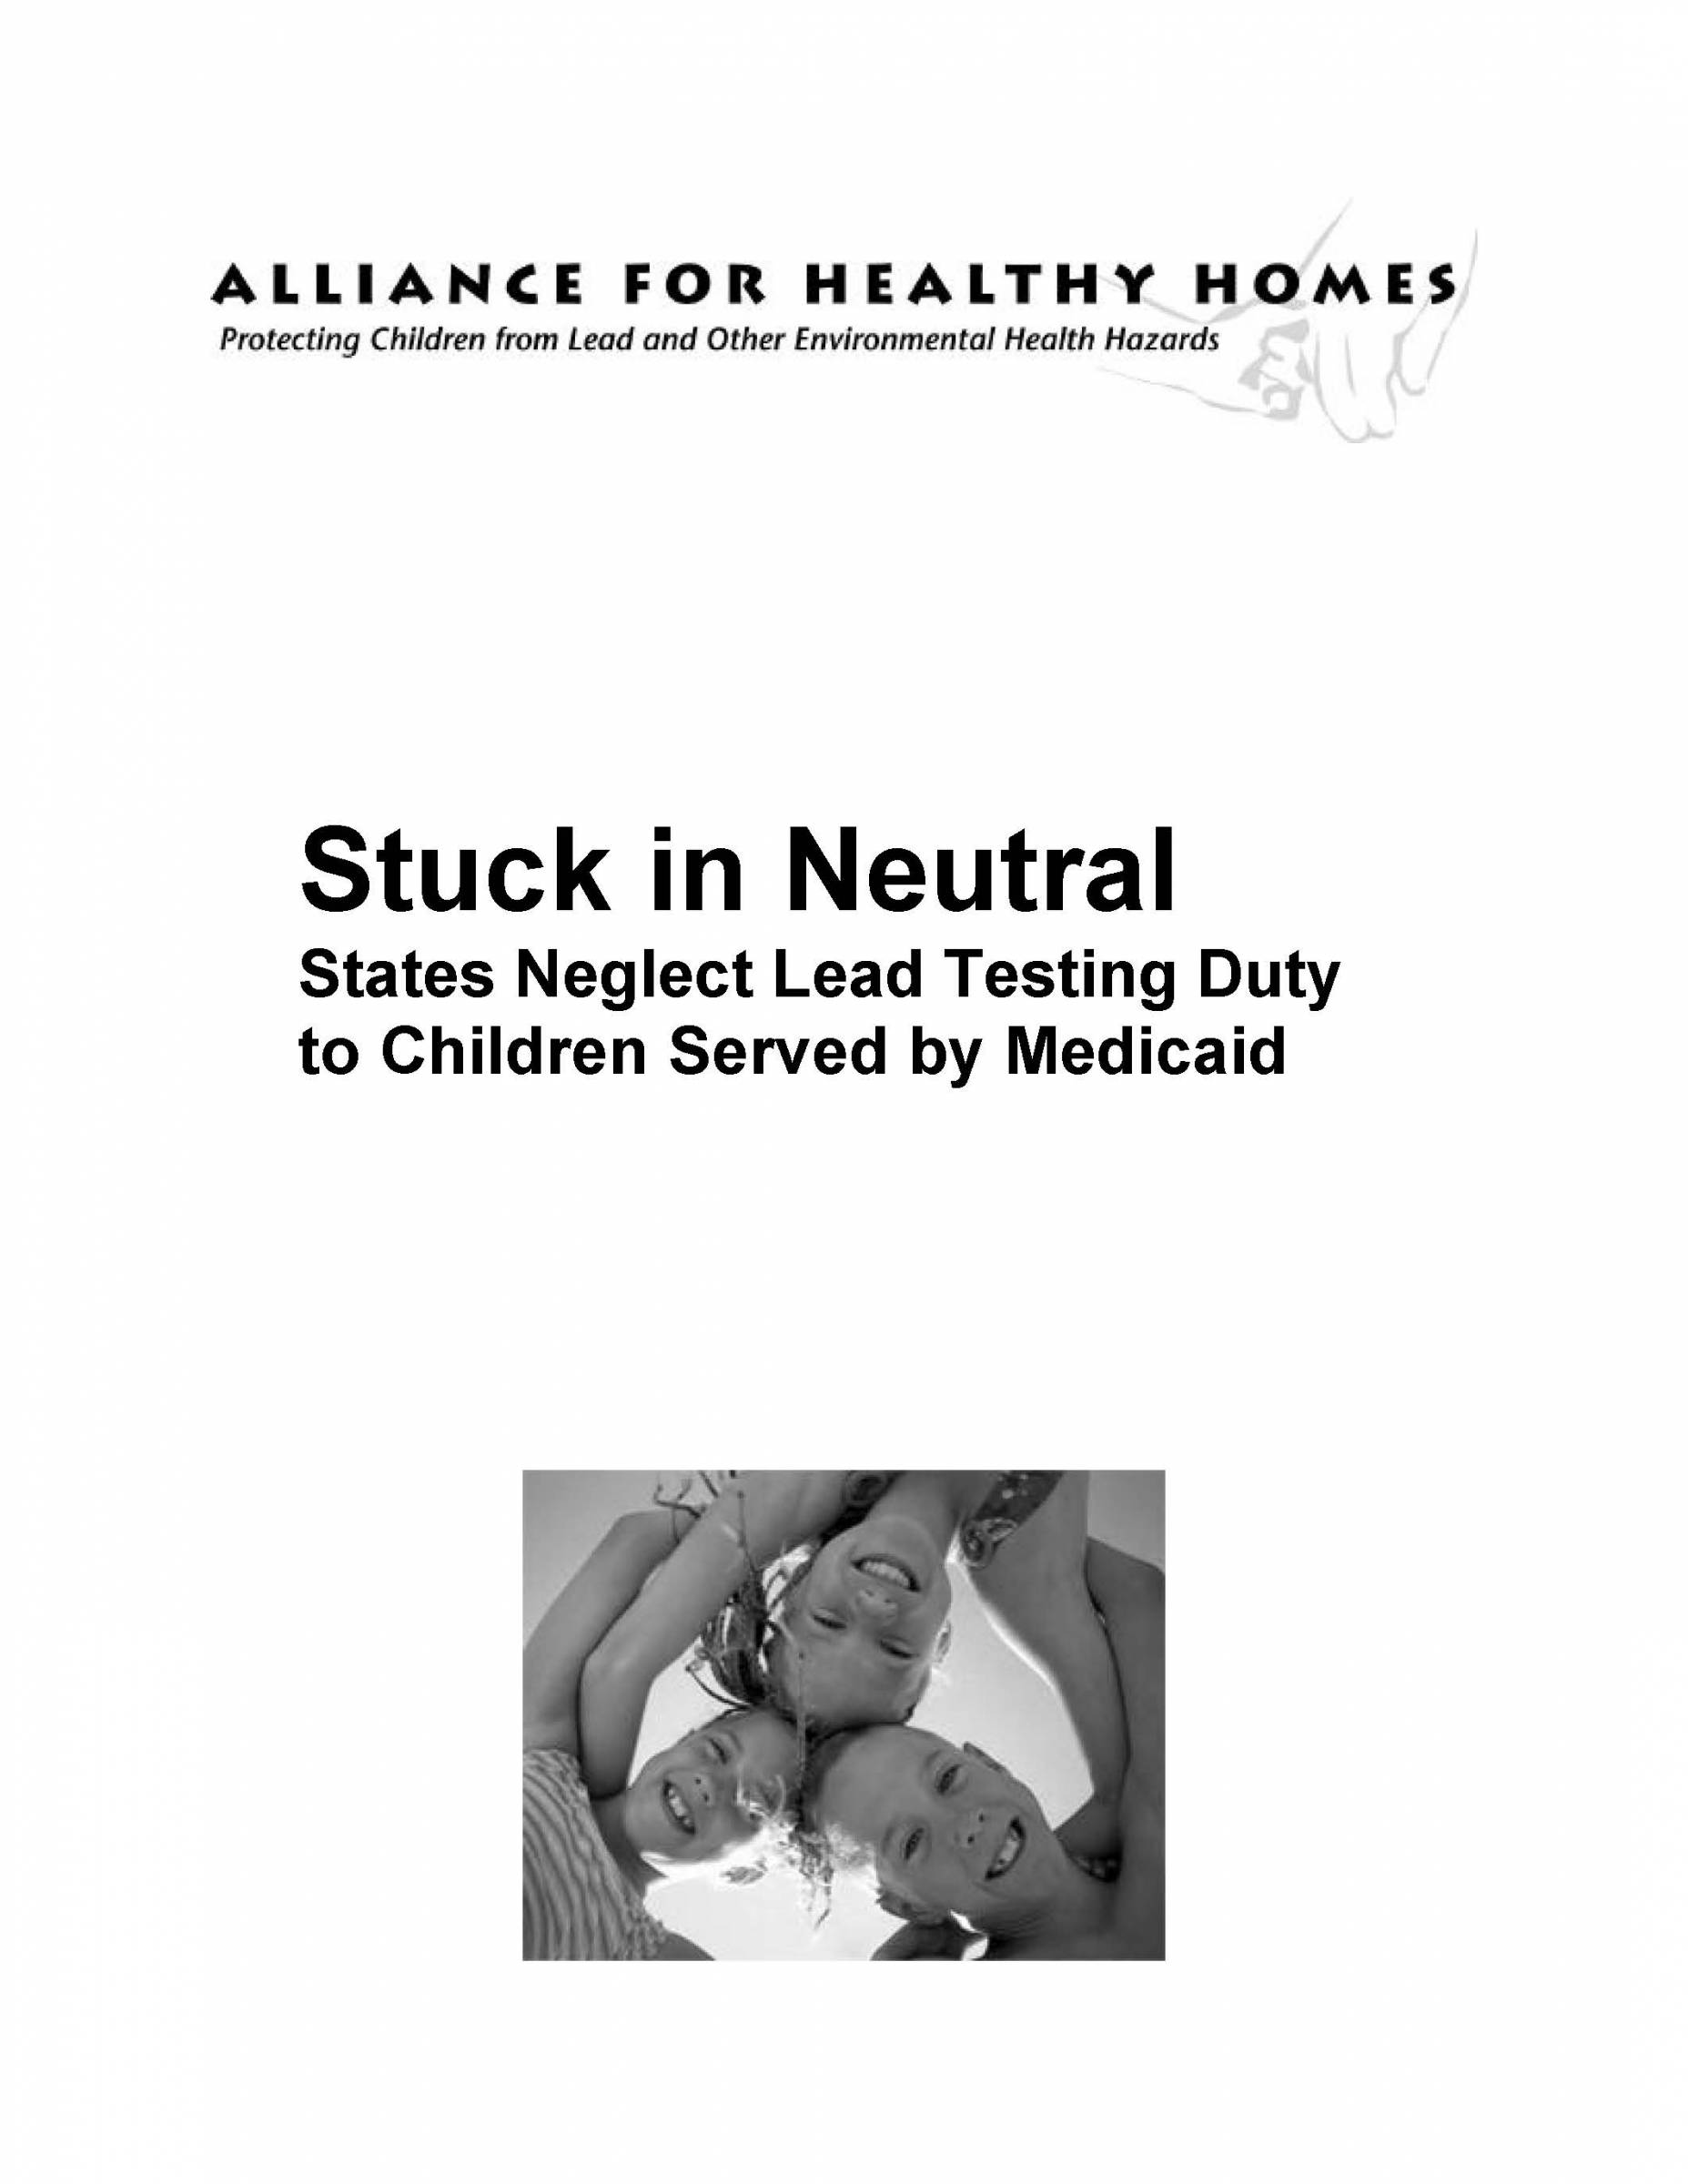 Stuck in Neutral: States Neglect Lead Testing Duty to Children Served by Medicaid